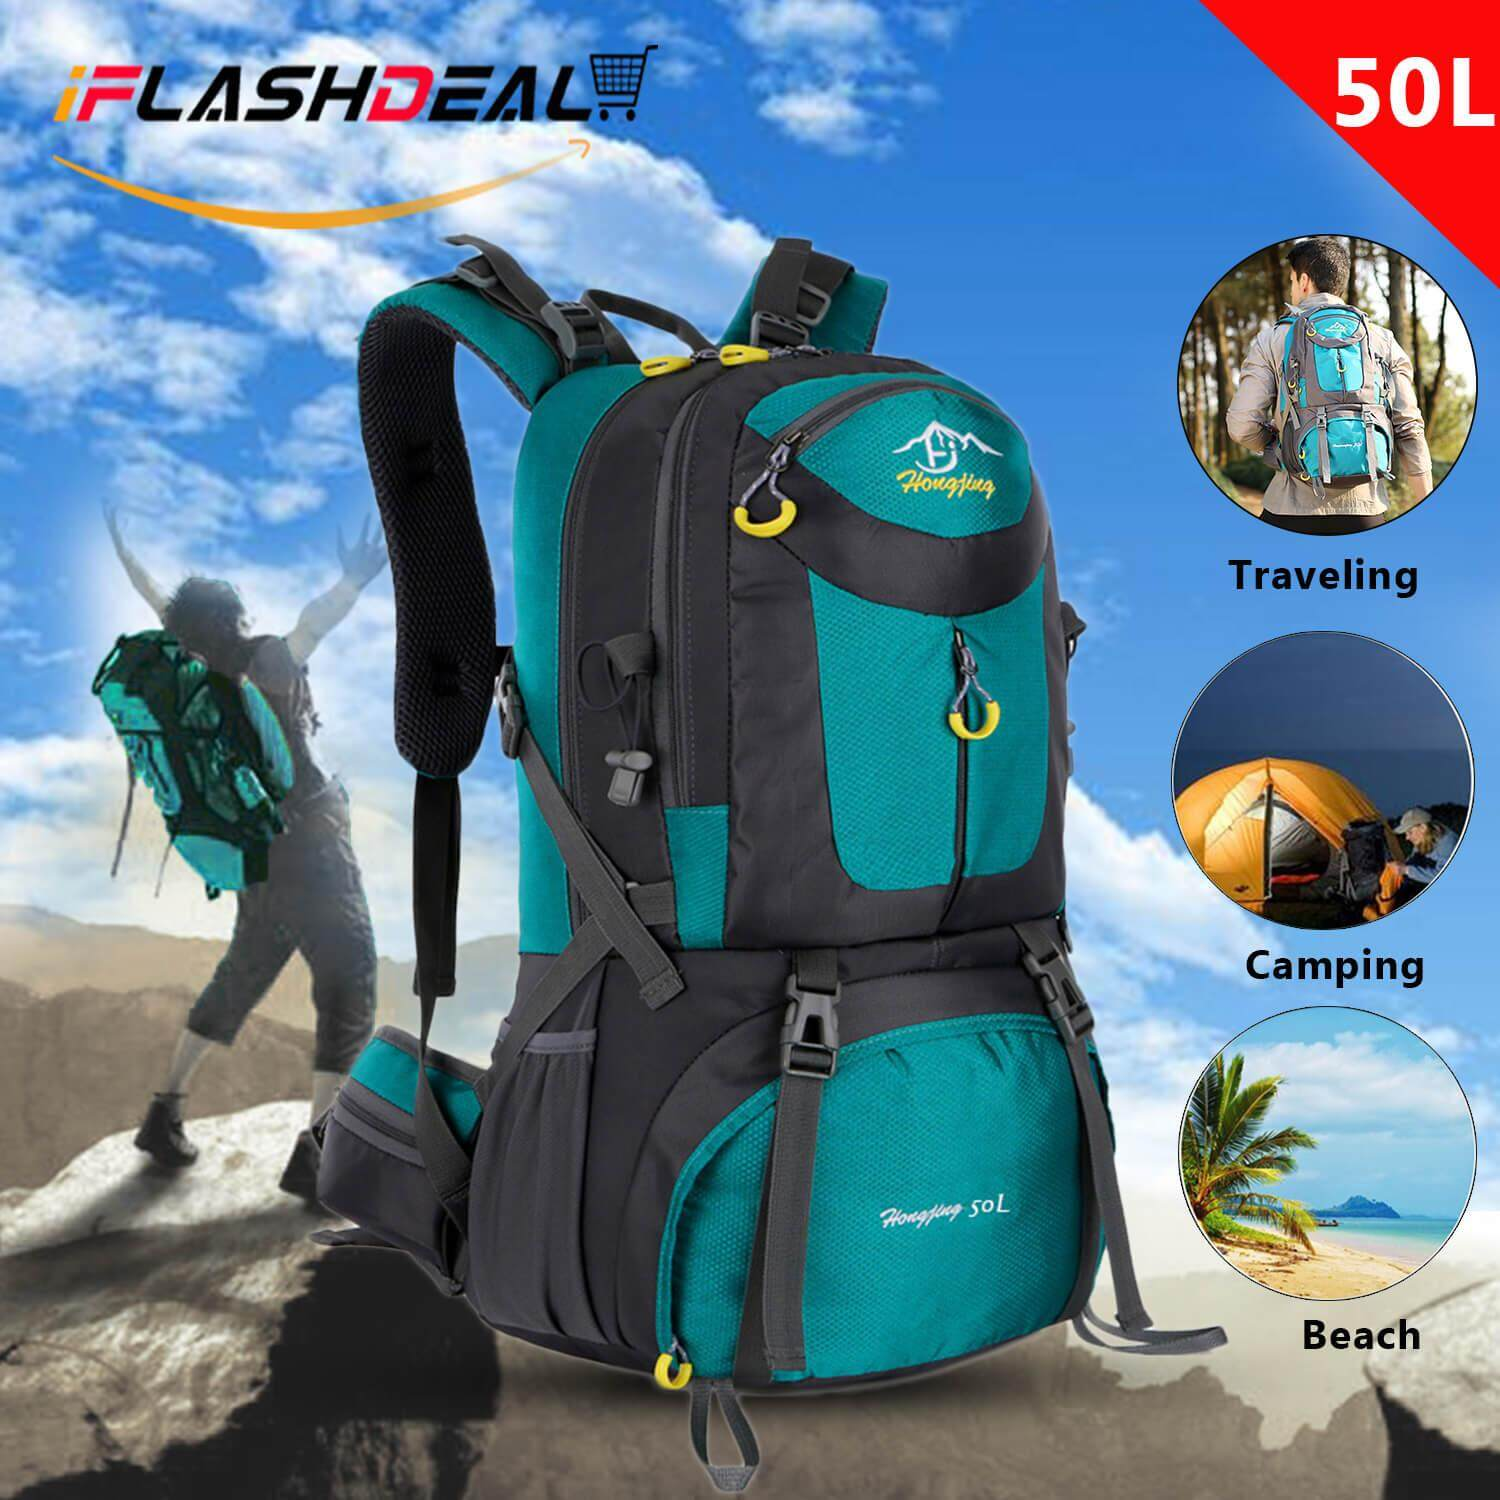 Iflashdeal Outdoor Hiking Backpack Sport Camping Travel Shoulder Pack Bag Water Resistant Mountaineering Climbing Backpacking Trekking Bag 50l By Iflashdeal